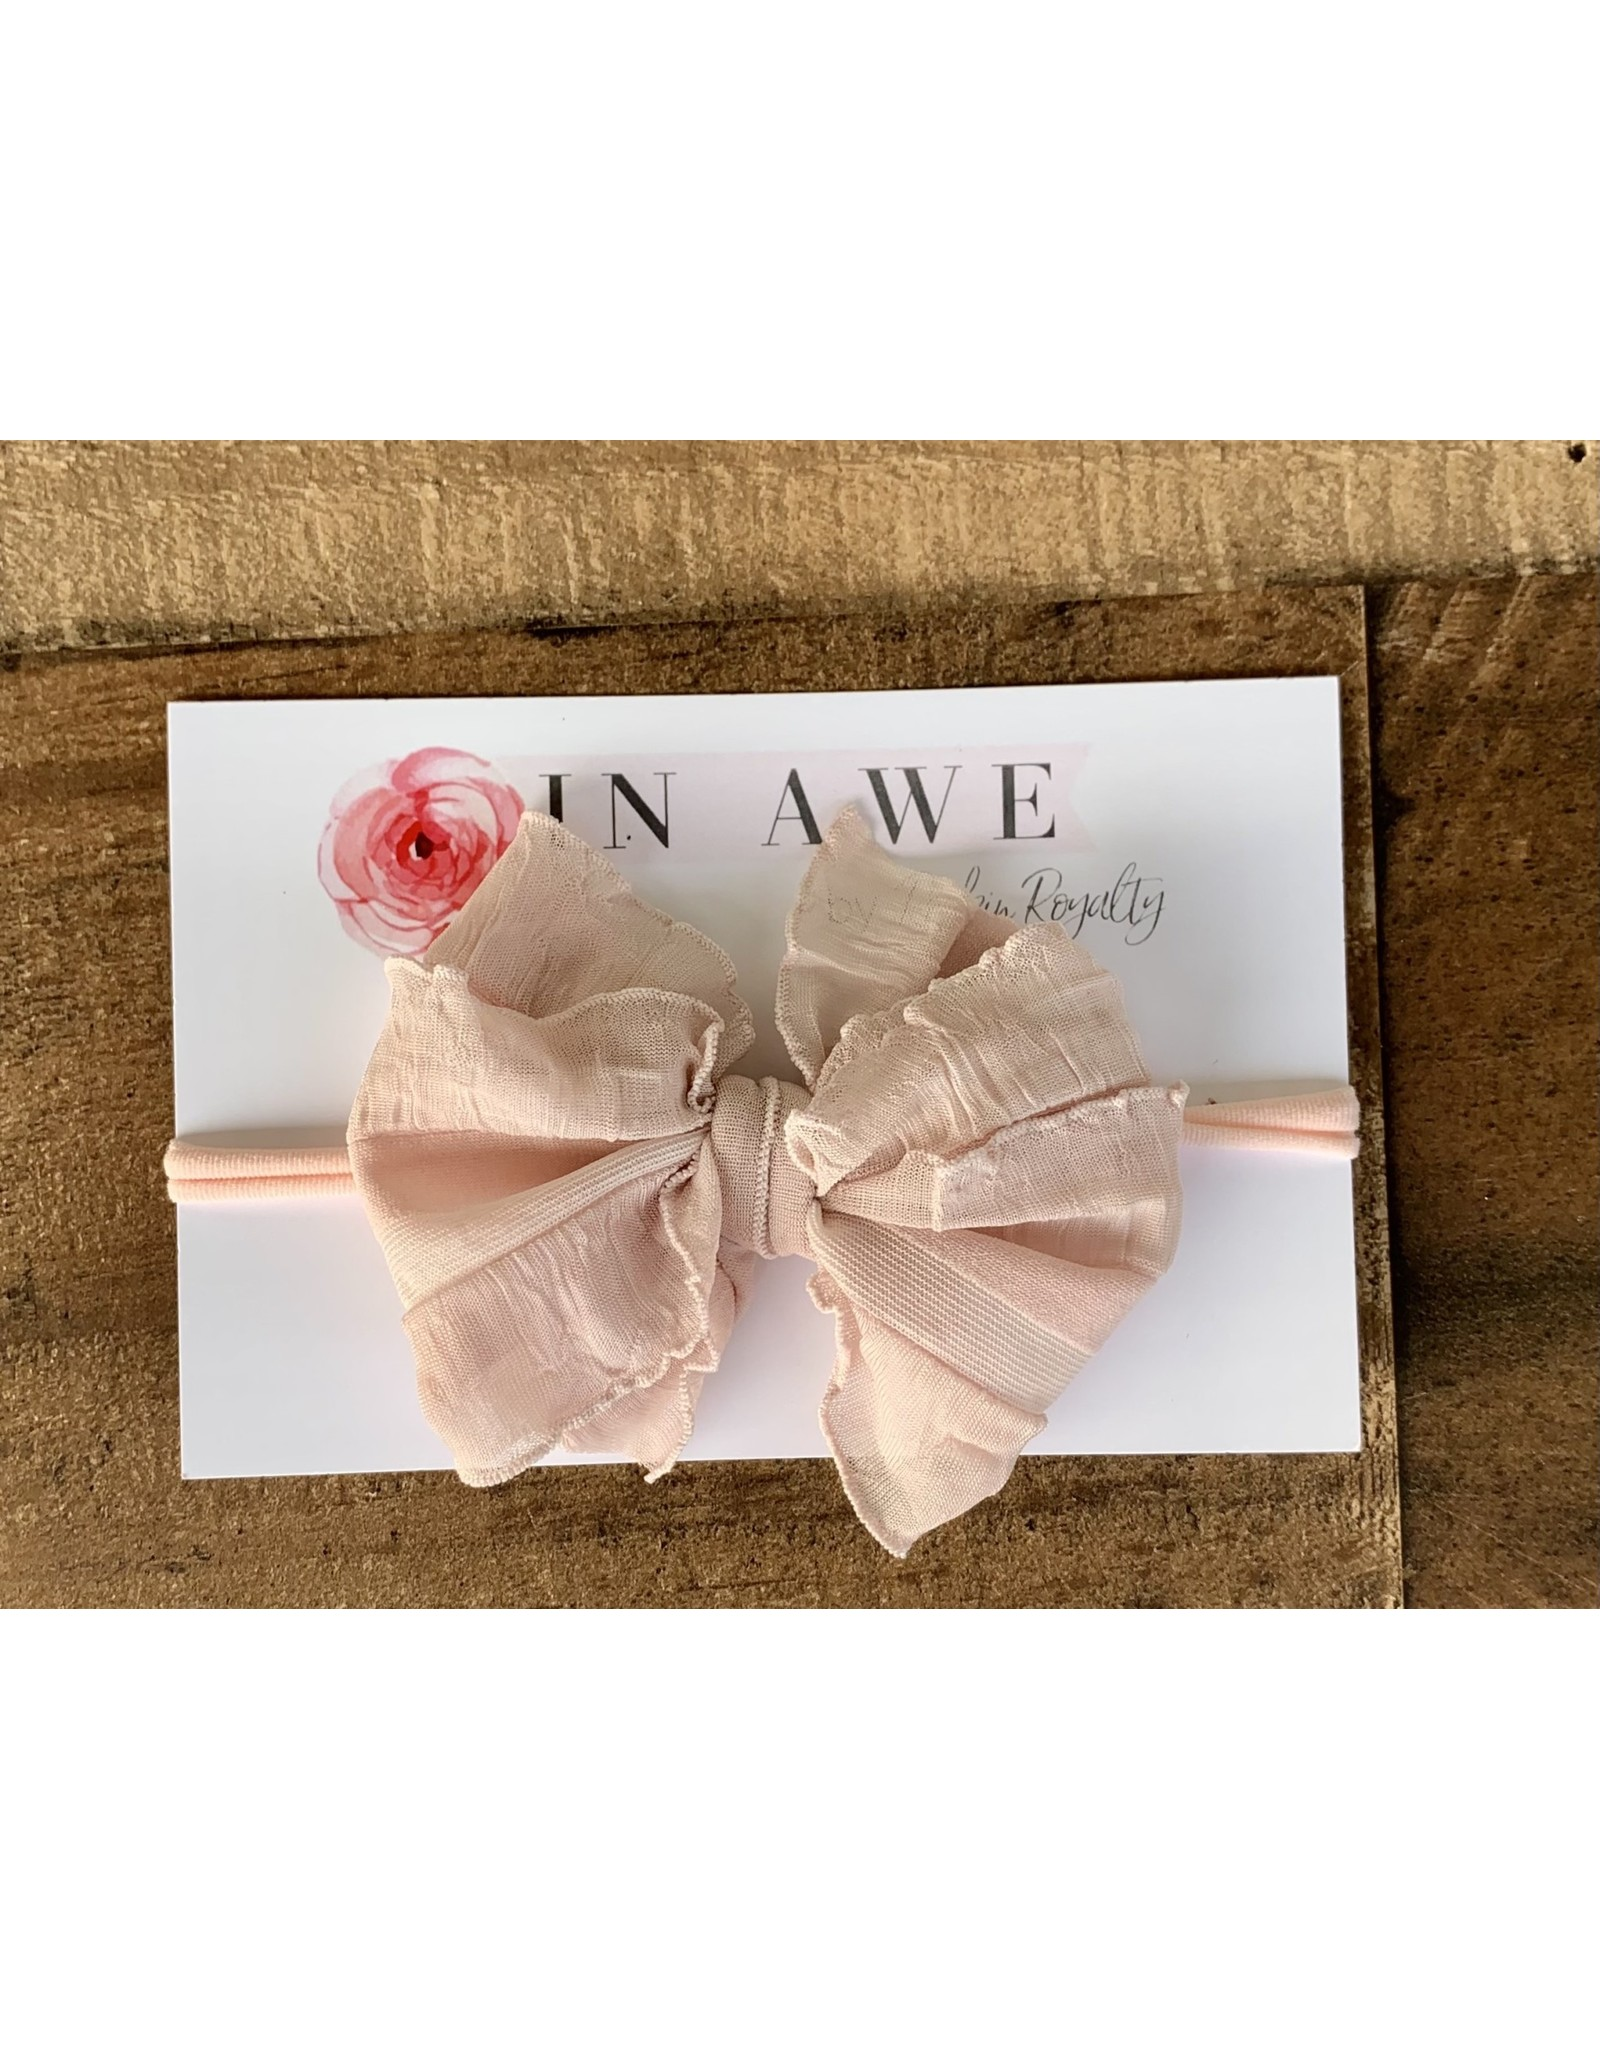 In Awe - Paris Pink Mini Ruffle Bow on Nylon Headband